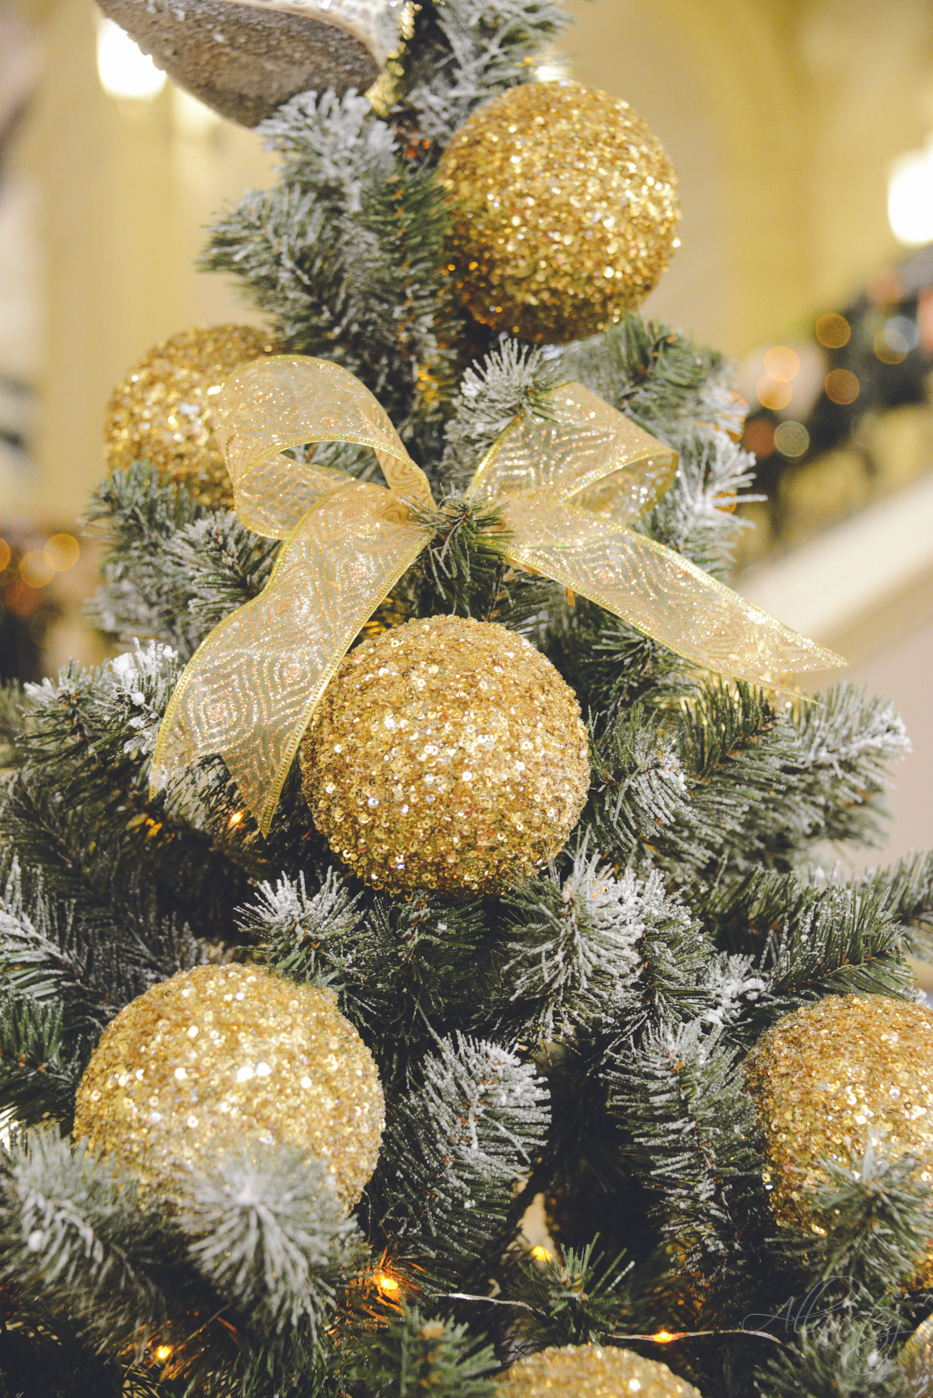 designer Christmas tree decorated with golden glitter Christmas balls and bow ribbons